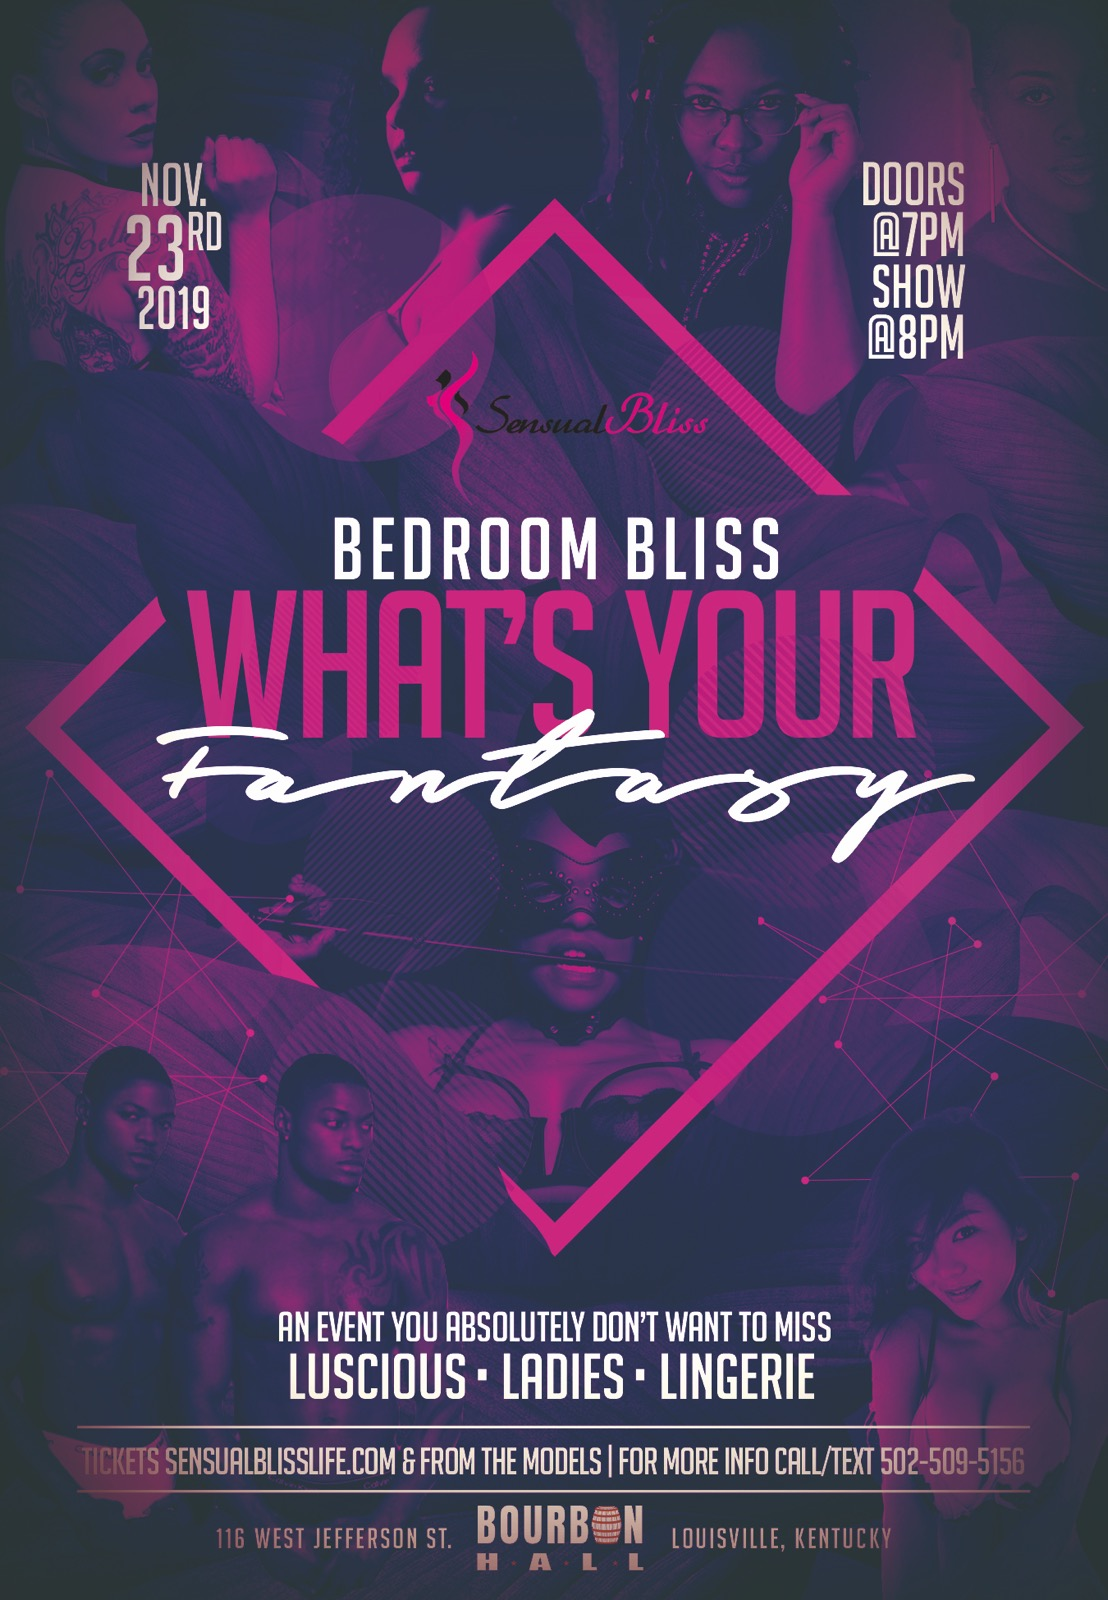 Bedroom Bliss(what's your fantasy)